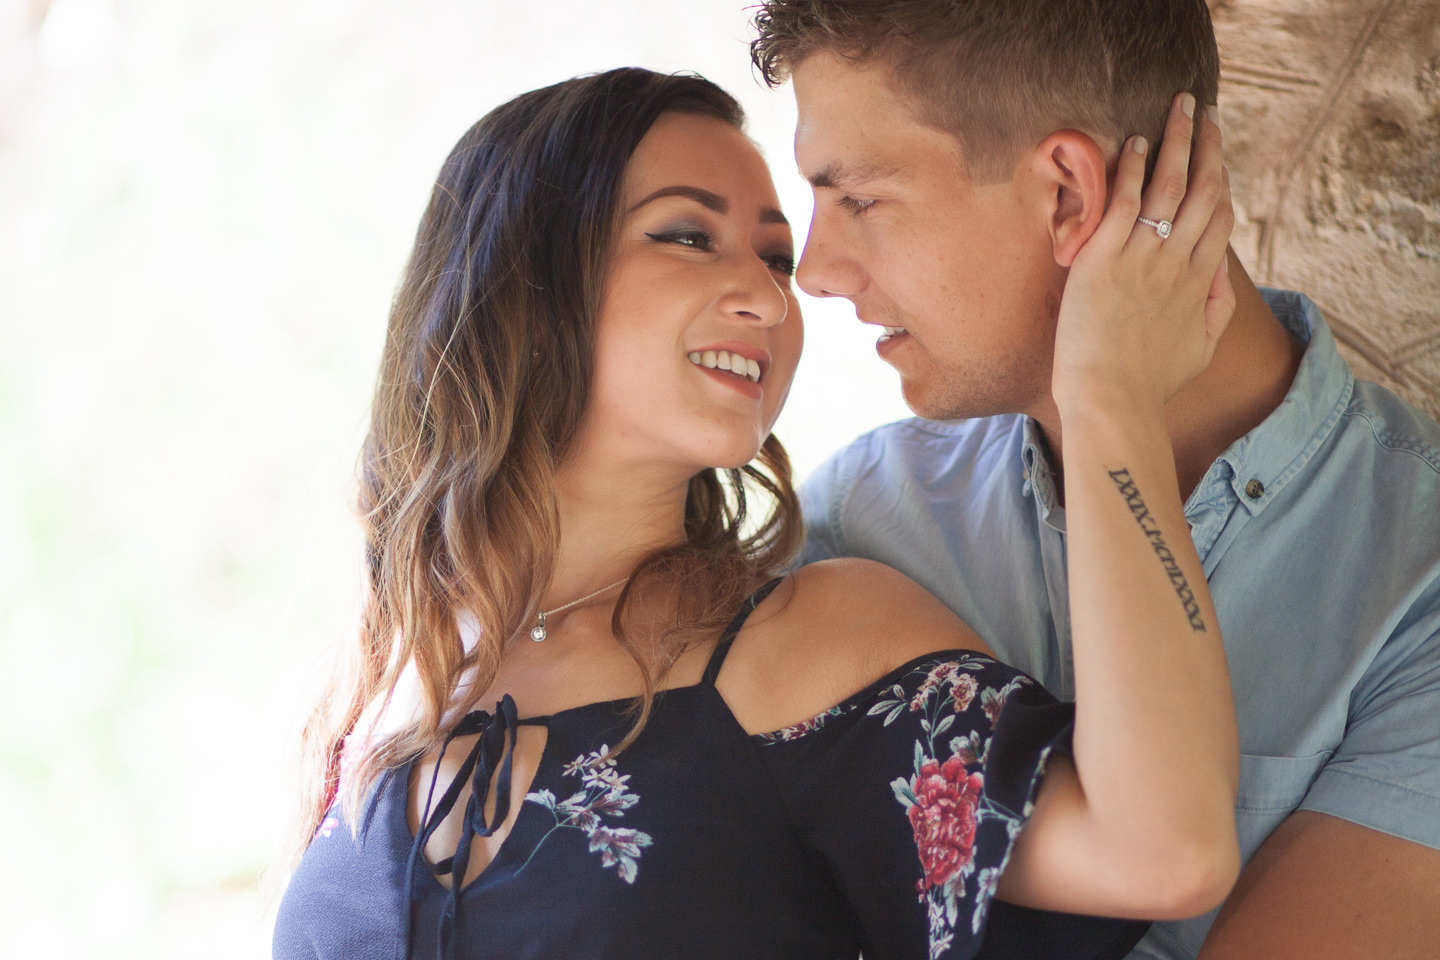 Photos of couples who are engaged